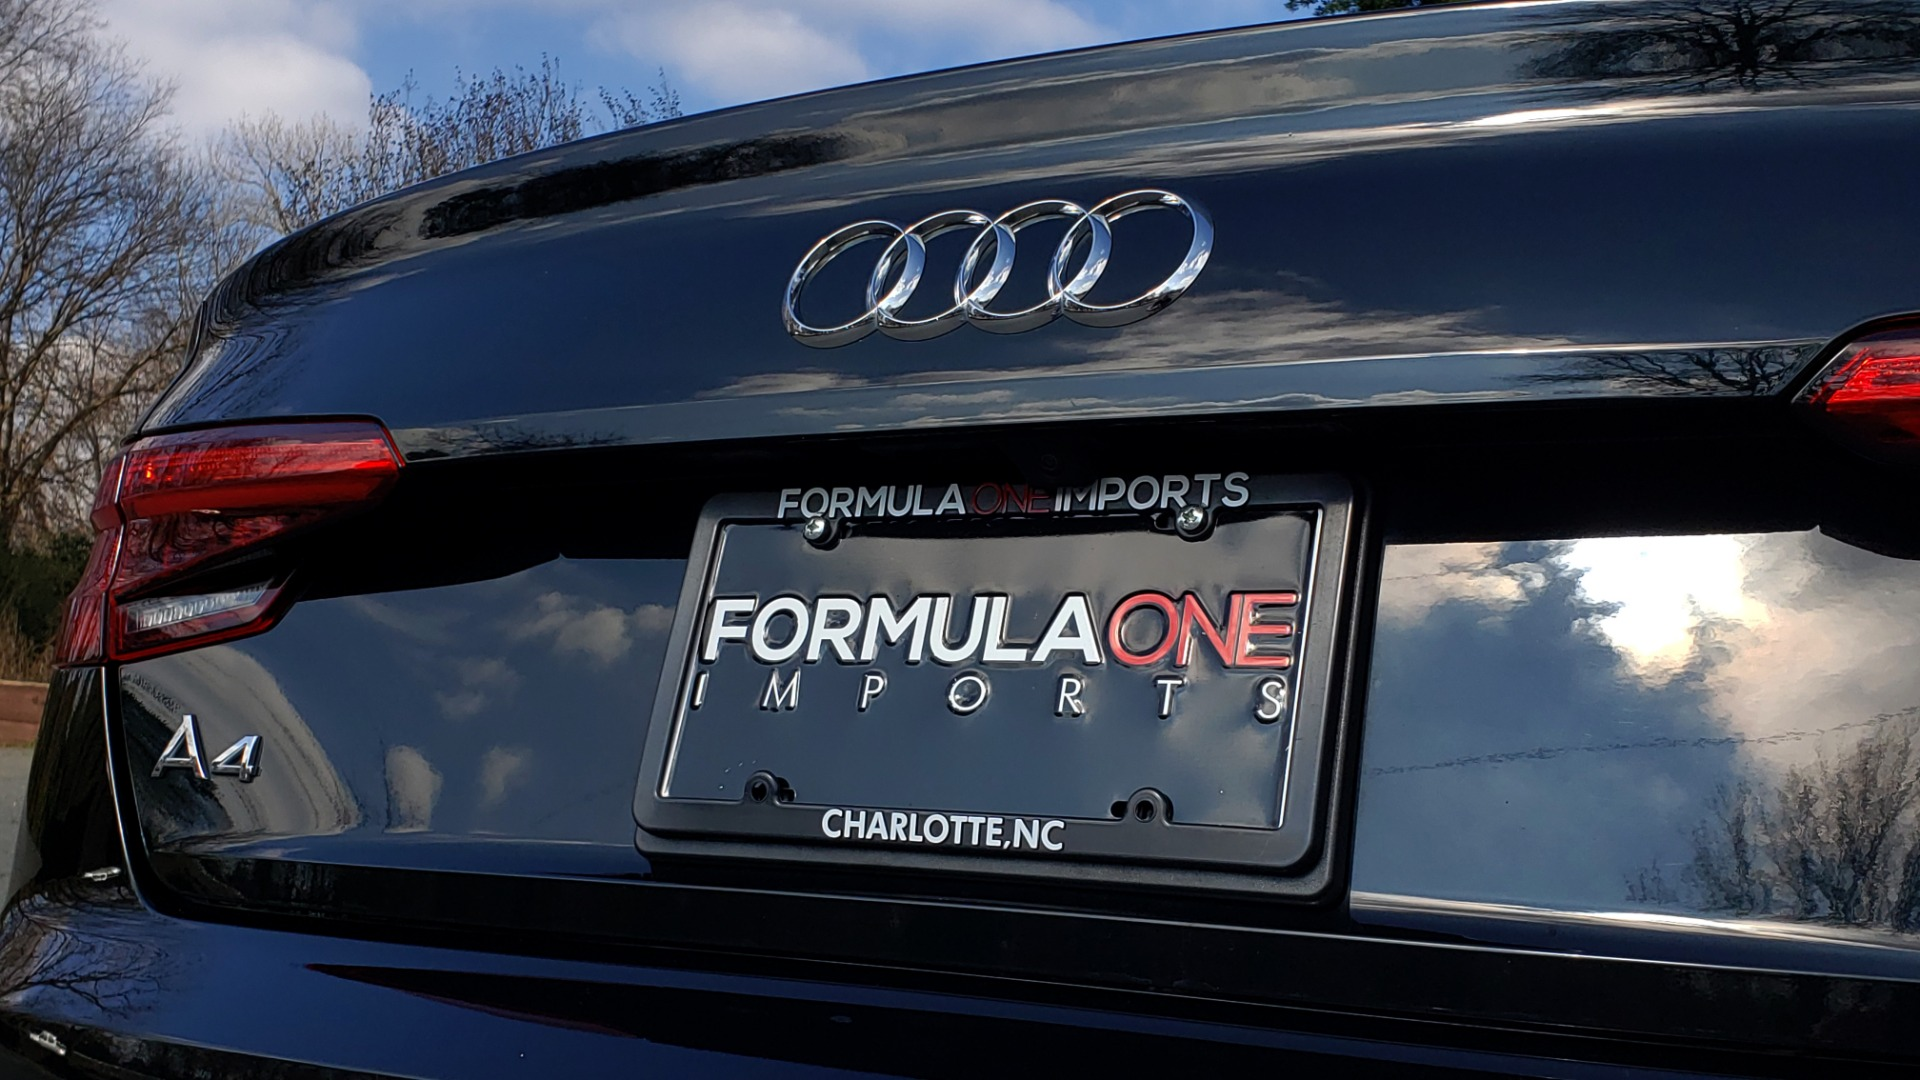 Used 2017 Audi A4 PREMIUM PLUS 2.0T / TECH / NAV / CLD WTHR / SUNROOF / REARVIEW for sale Sold at Formula Imports in Charlotte NC 28227 26